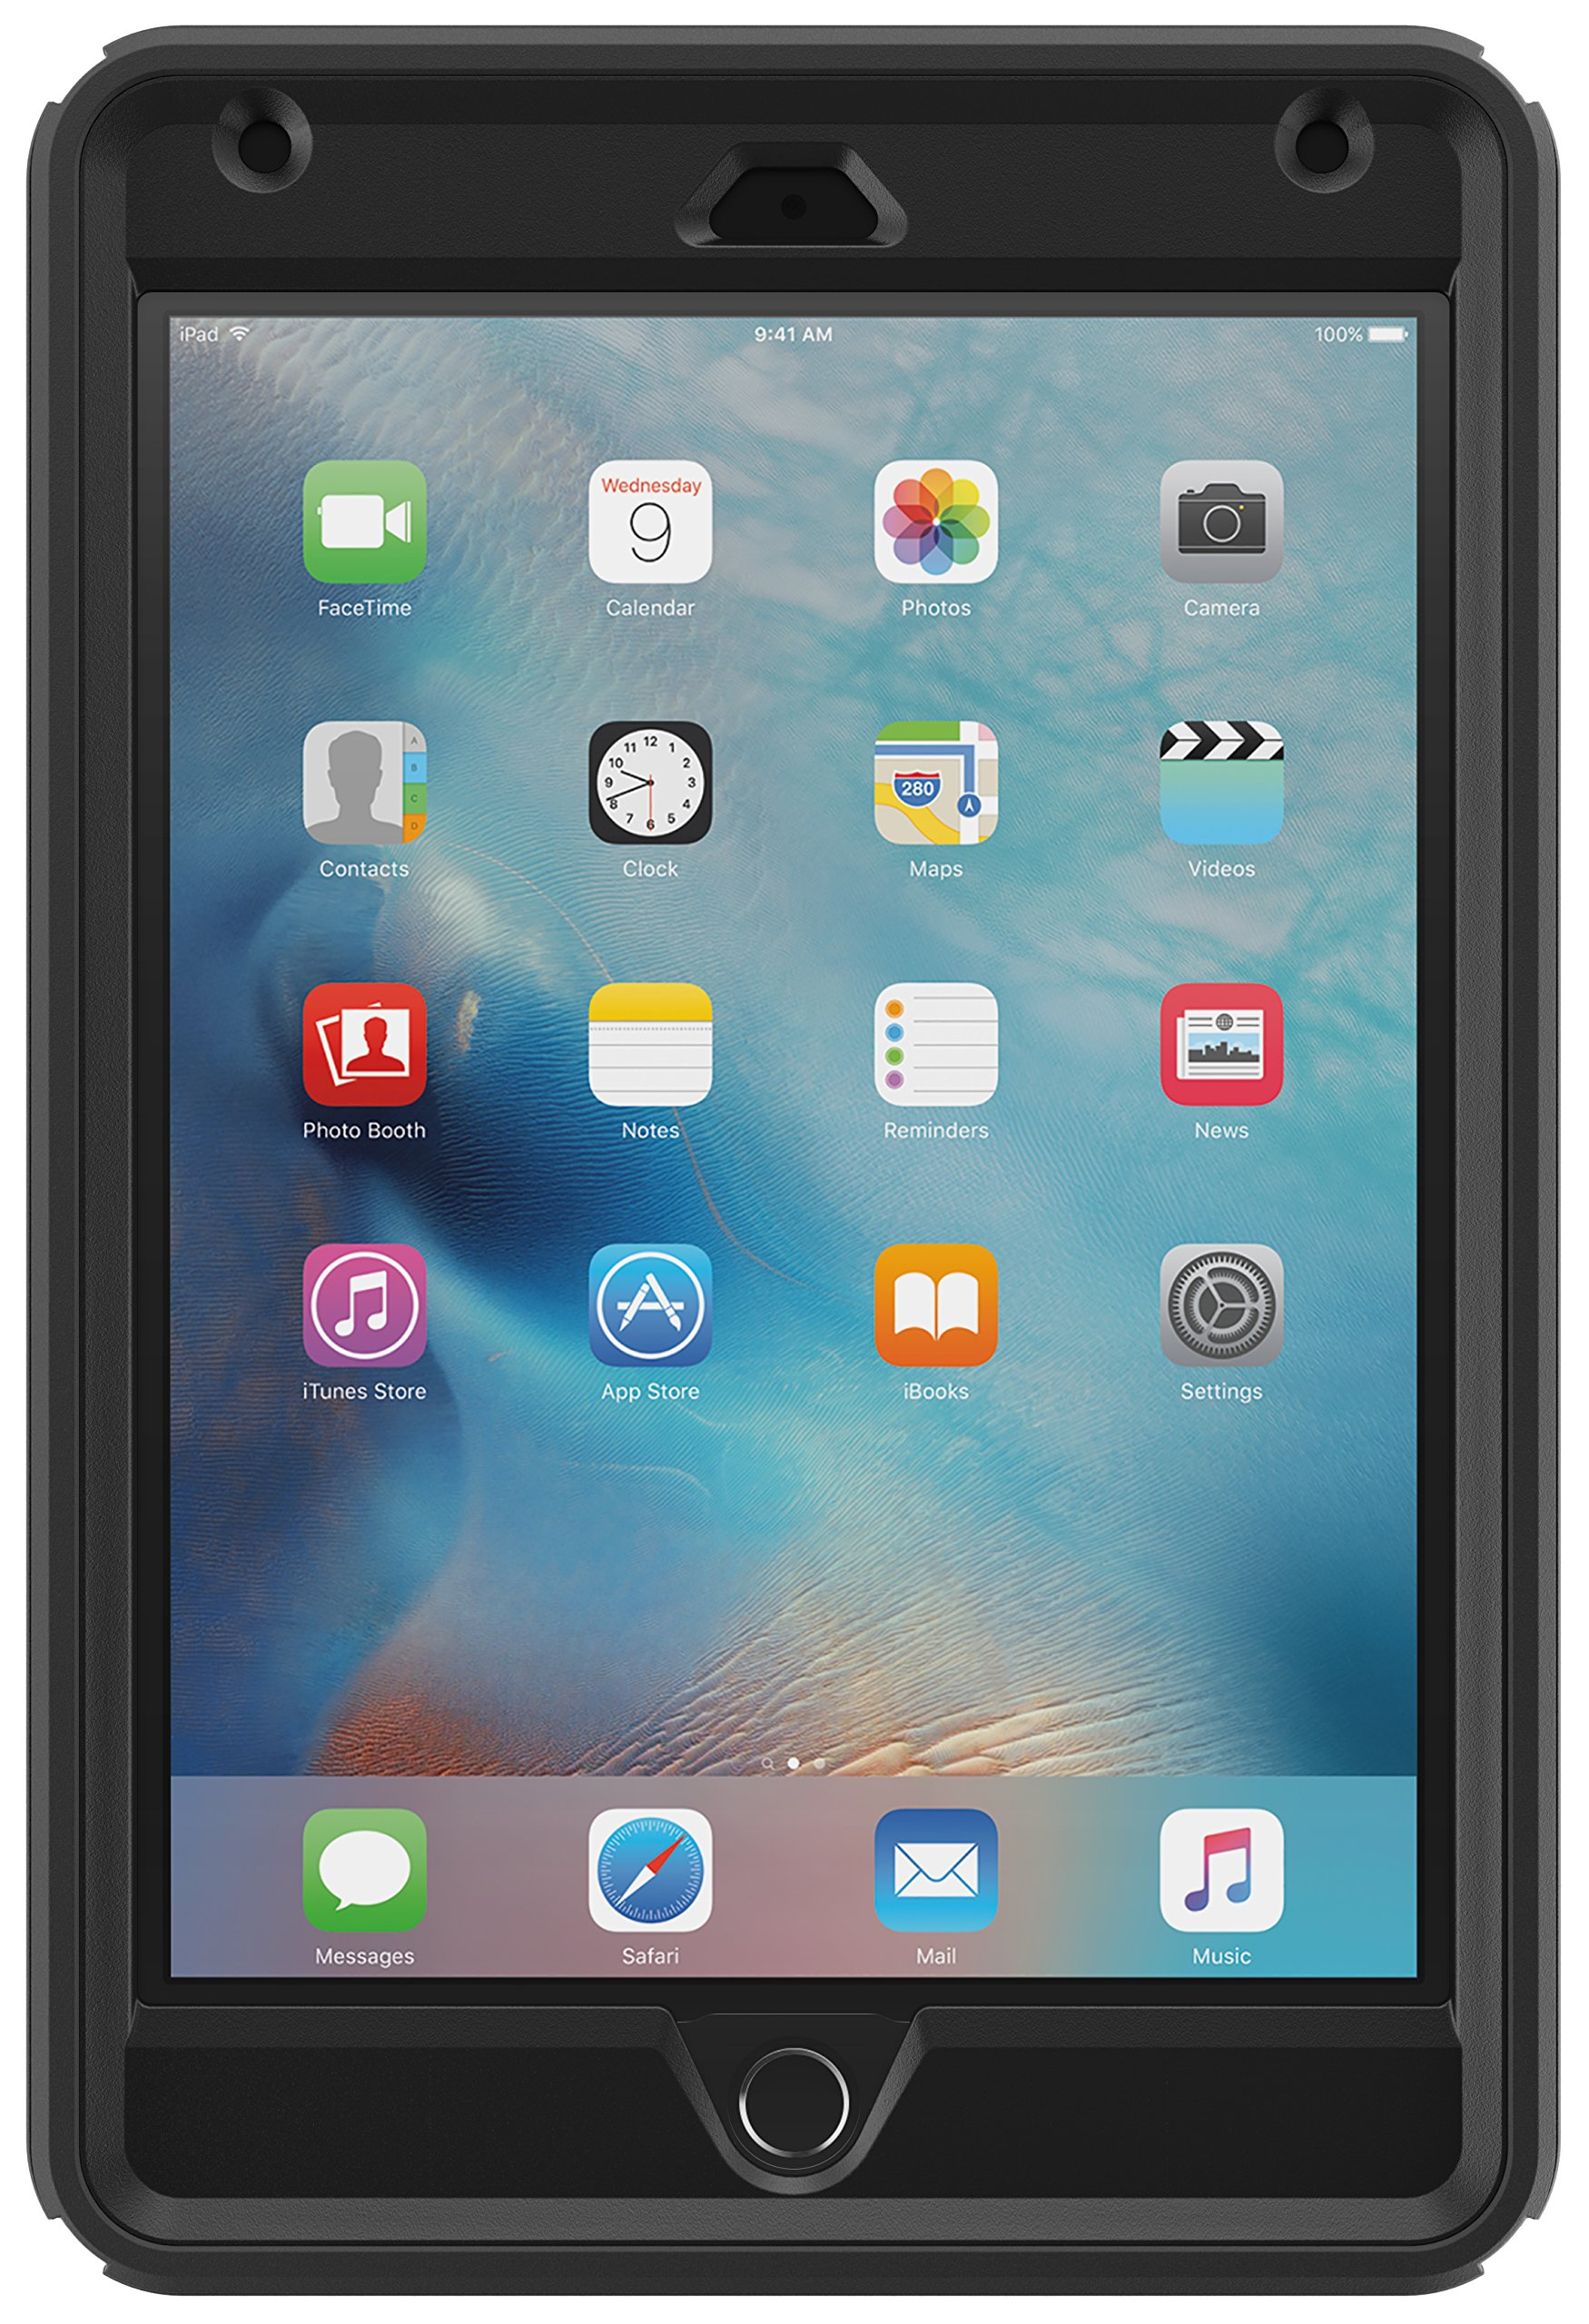 OtterBox DEFENDER SERIES Case for iPad Mini 4 (ONLY) - Retail Packaging - BLACK by OtterBox (Image #2)